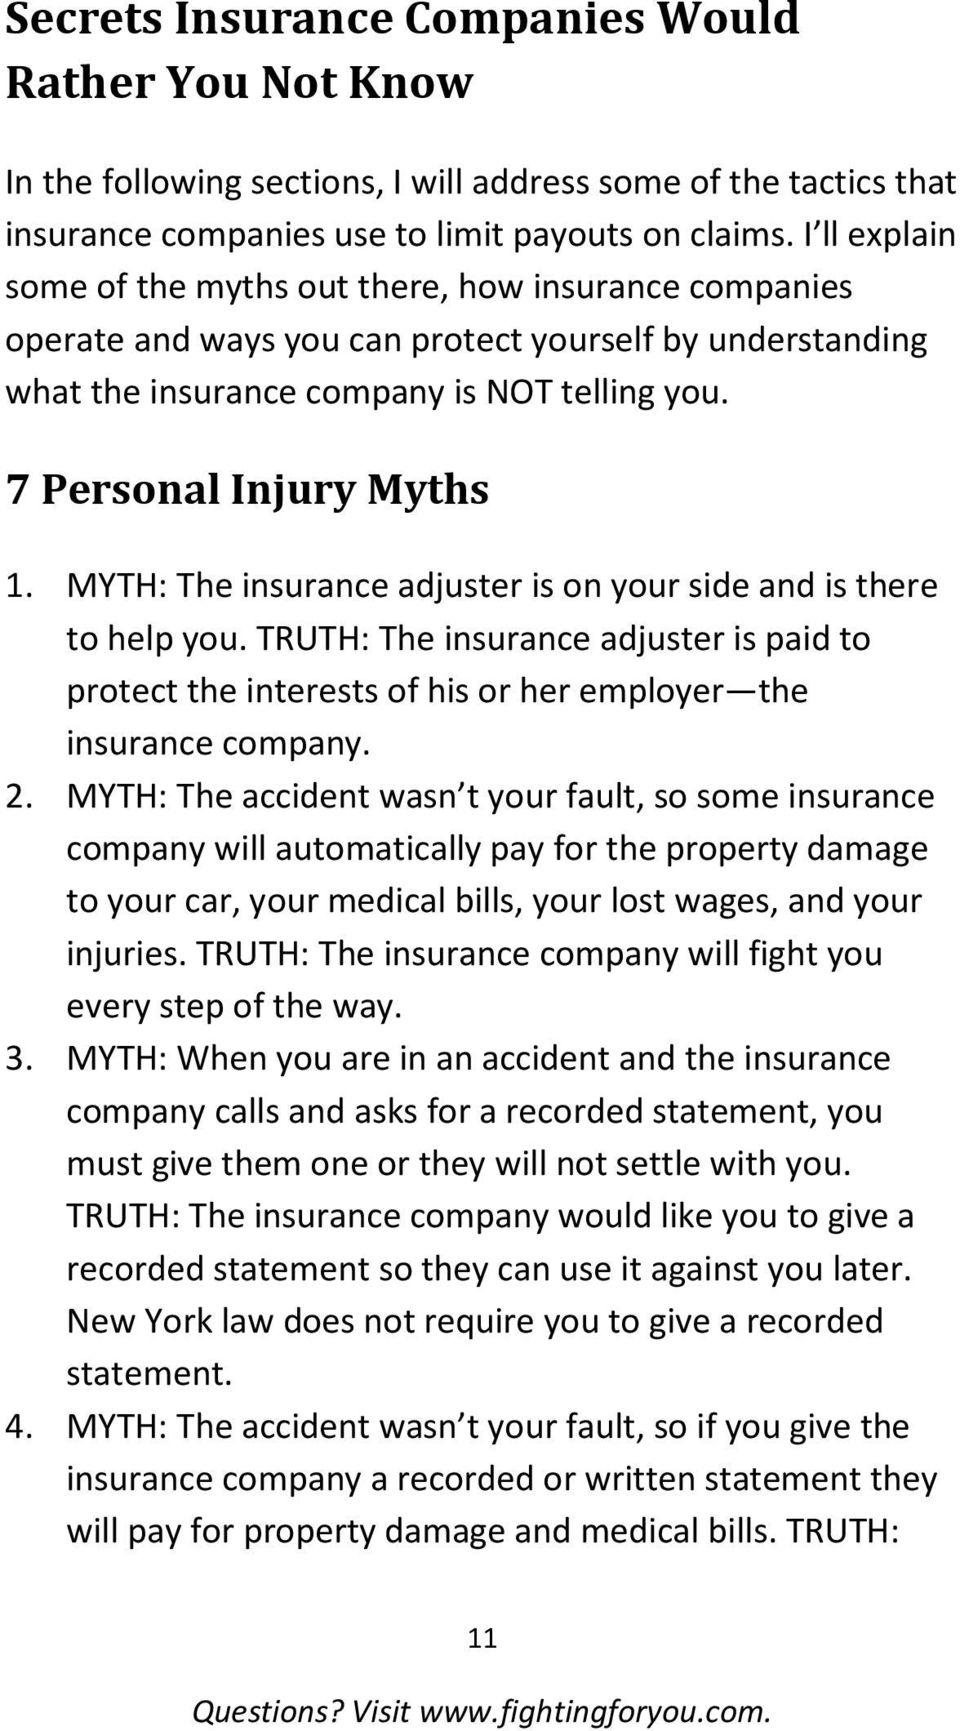 MYTH: The insurance adjuster is on your side and is there to help you. TRUTH: The insurance adjuster is paid to protect the interests of his or her employer the insurance company. 2.